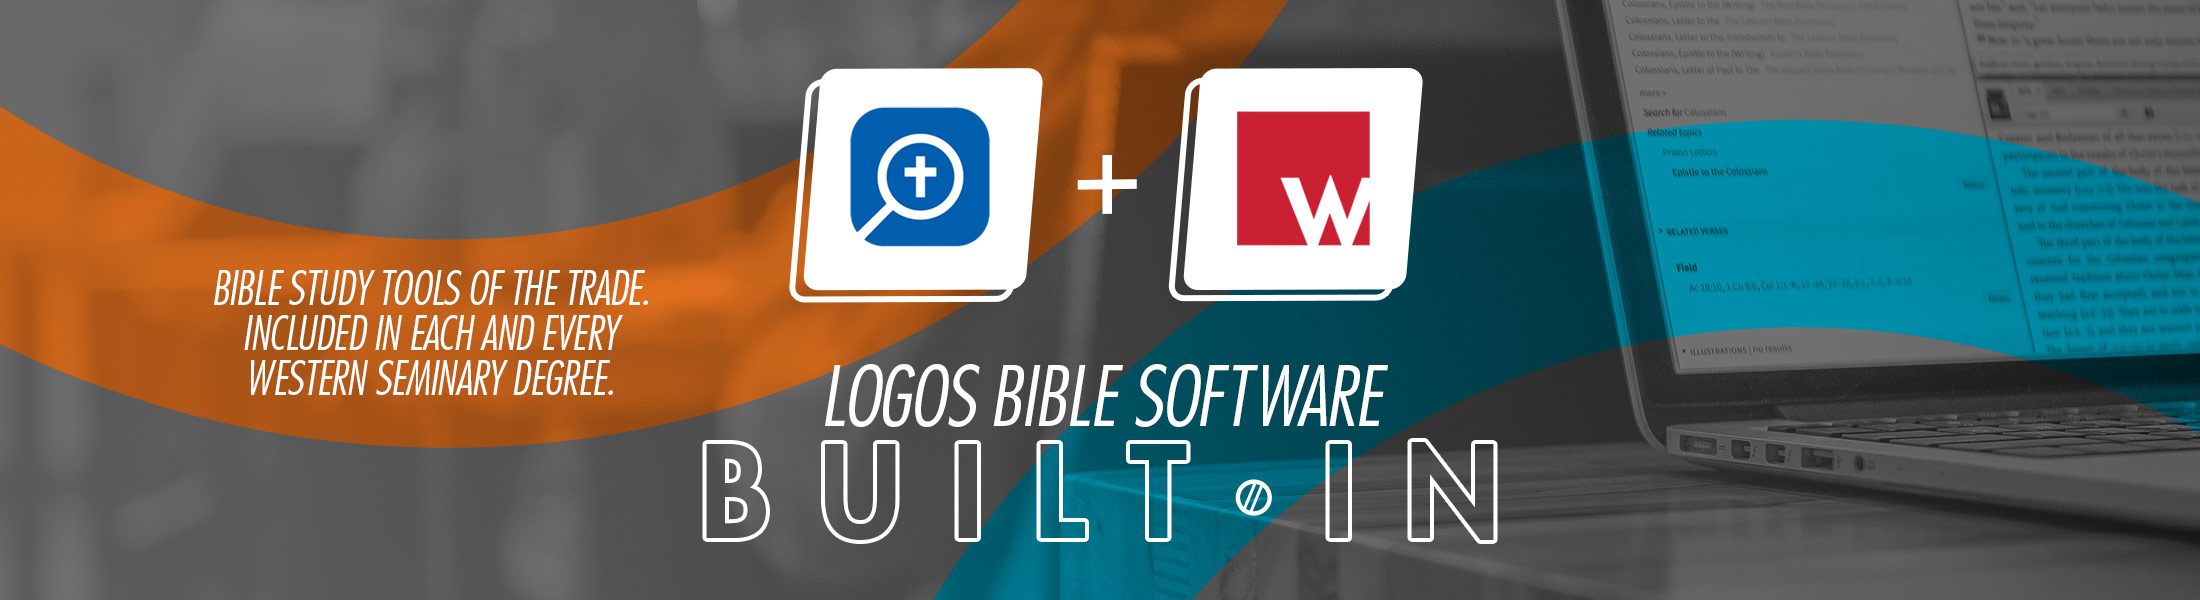 Logos Bible Software is built in to every degree program at Western Seminary.